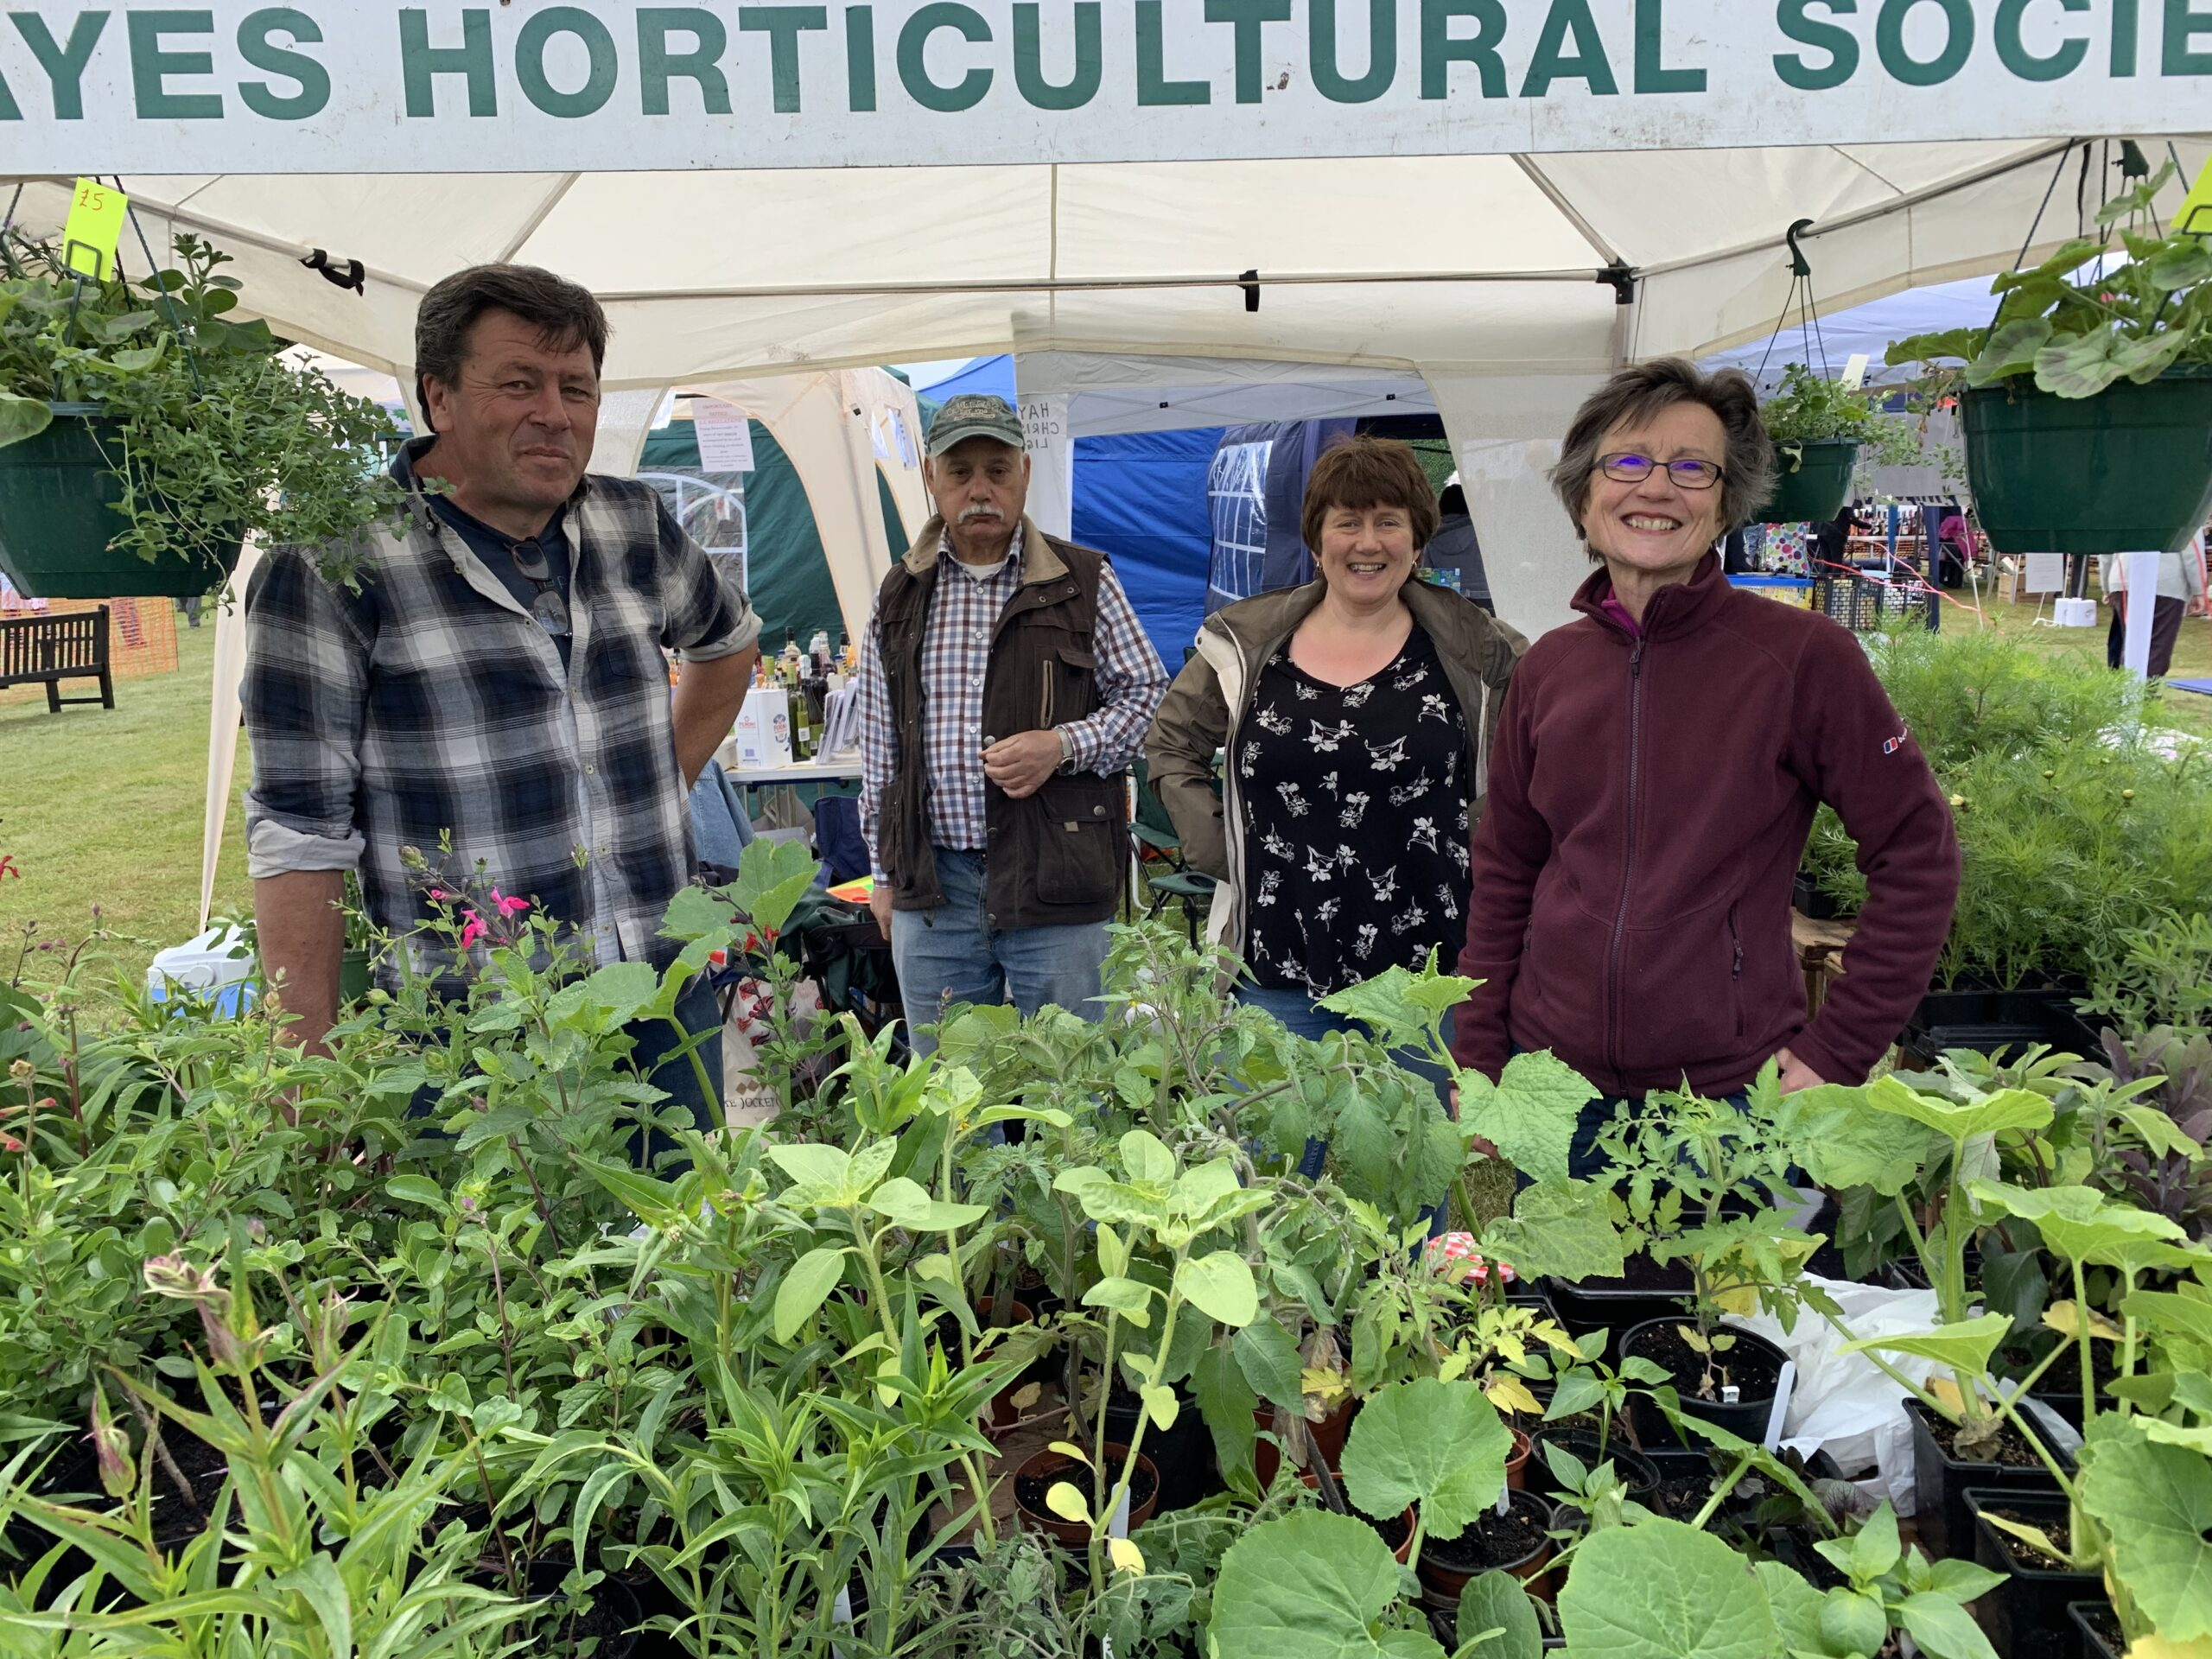 Hayes Horticultural Society